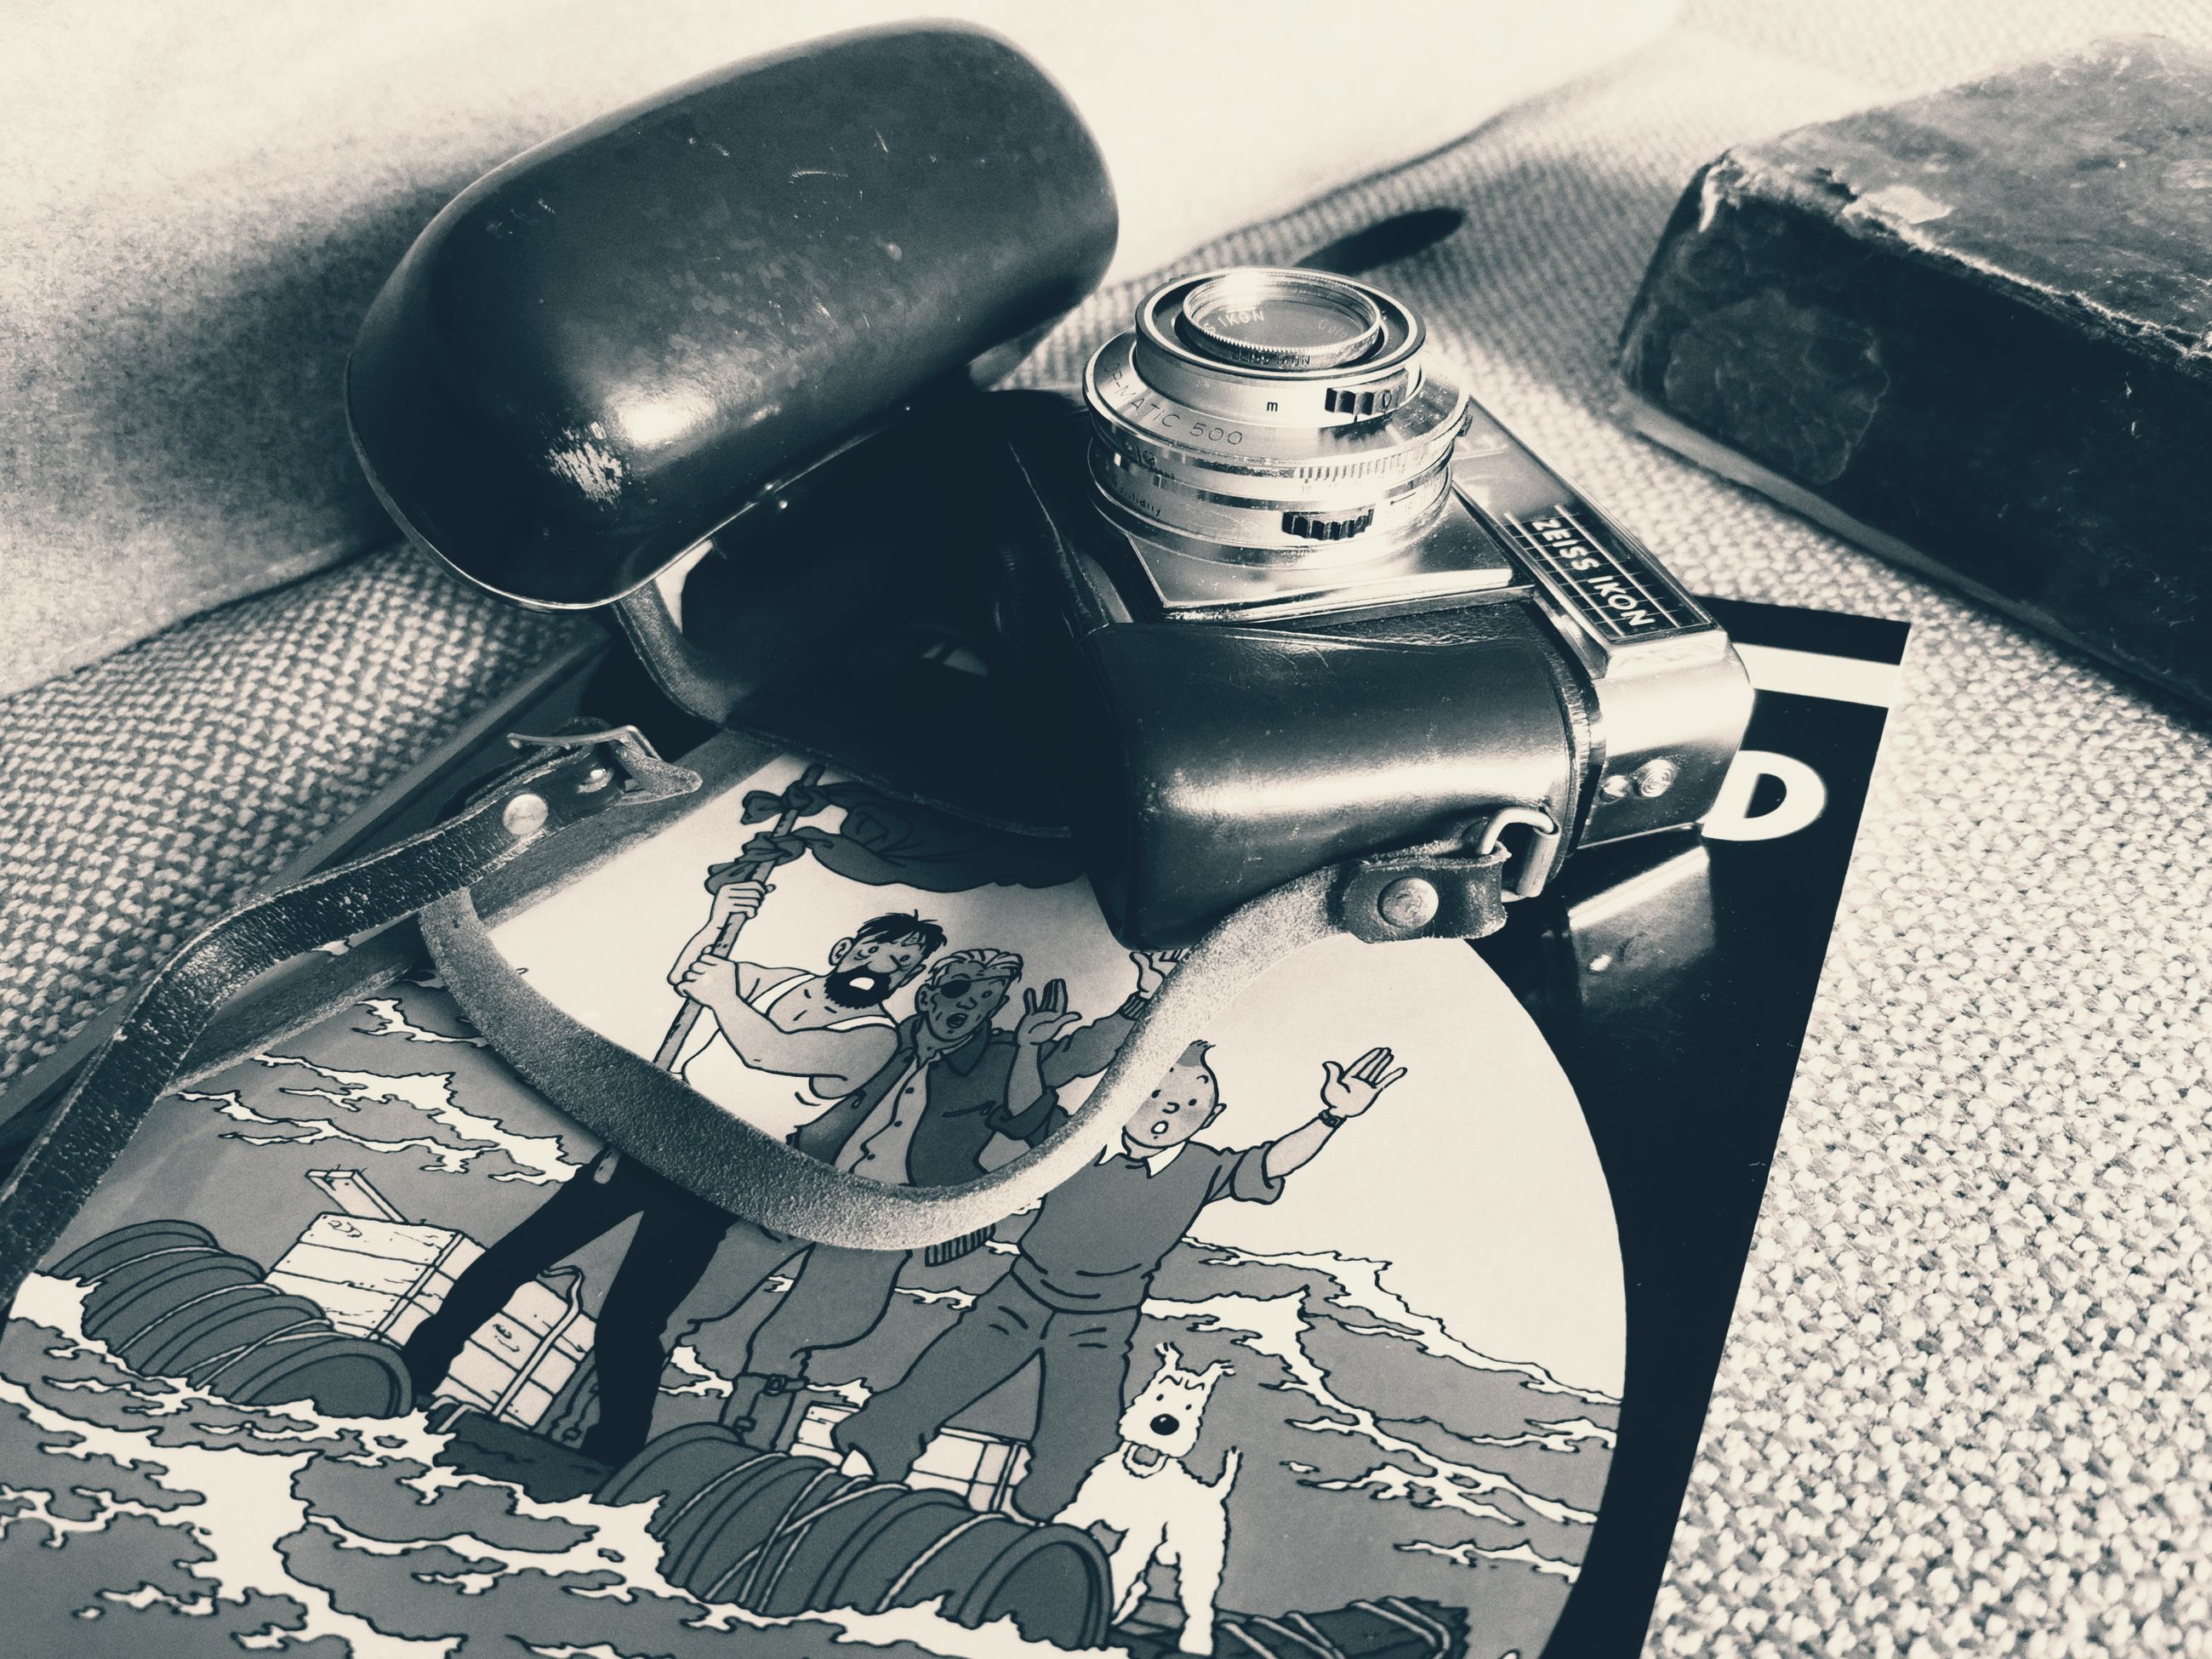 high angle view, indoors, still life, close-up, table, no people, metal, equipment, technology, watch, wristwatch, communication, photography themes, pen, retro styled, day, text, group, binoculars